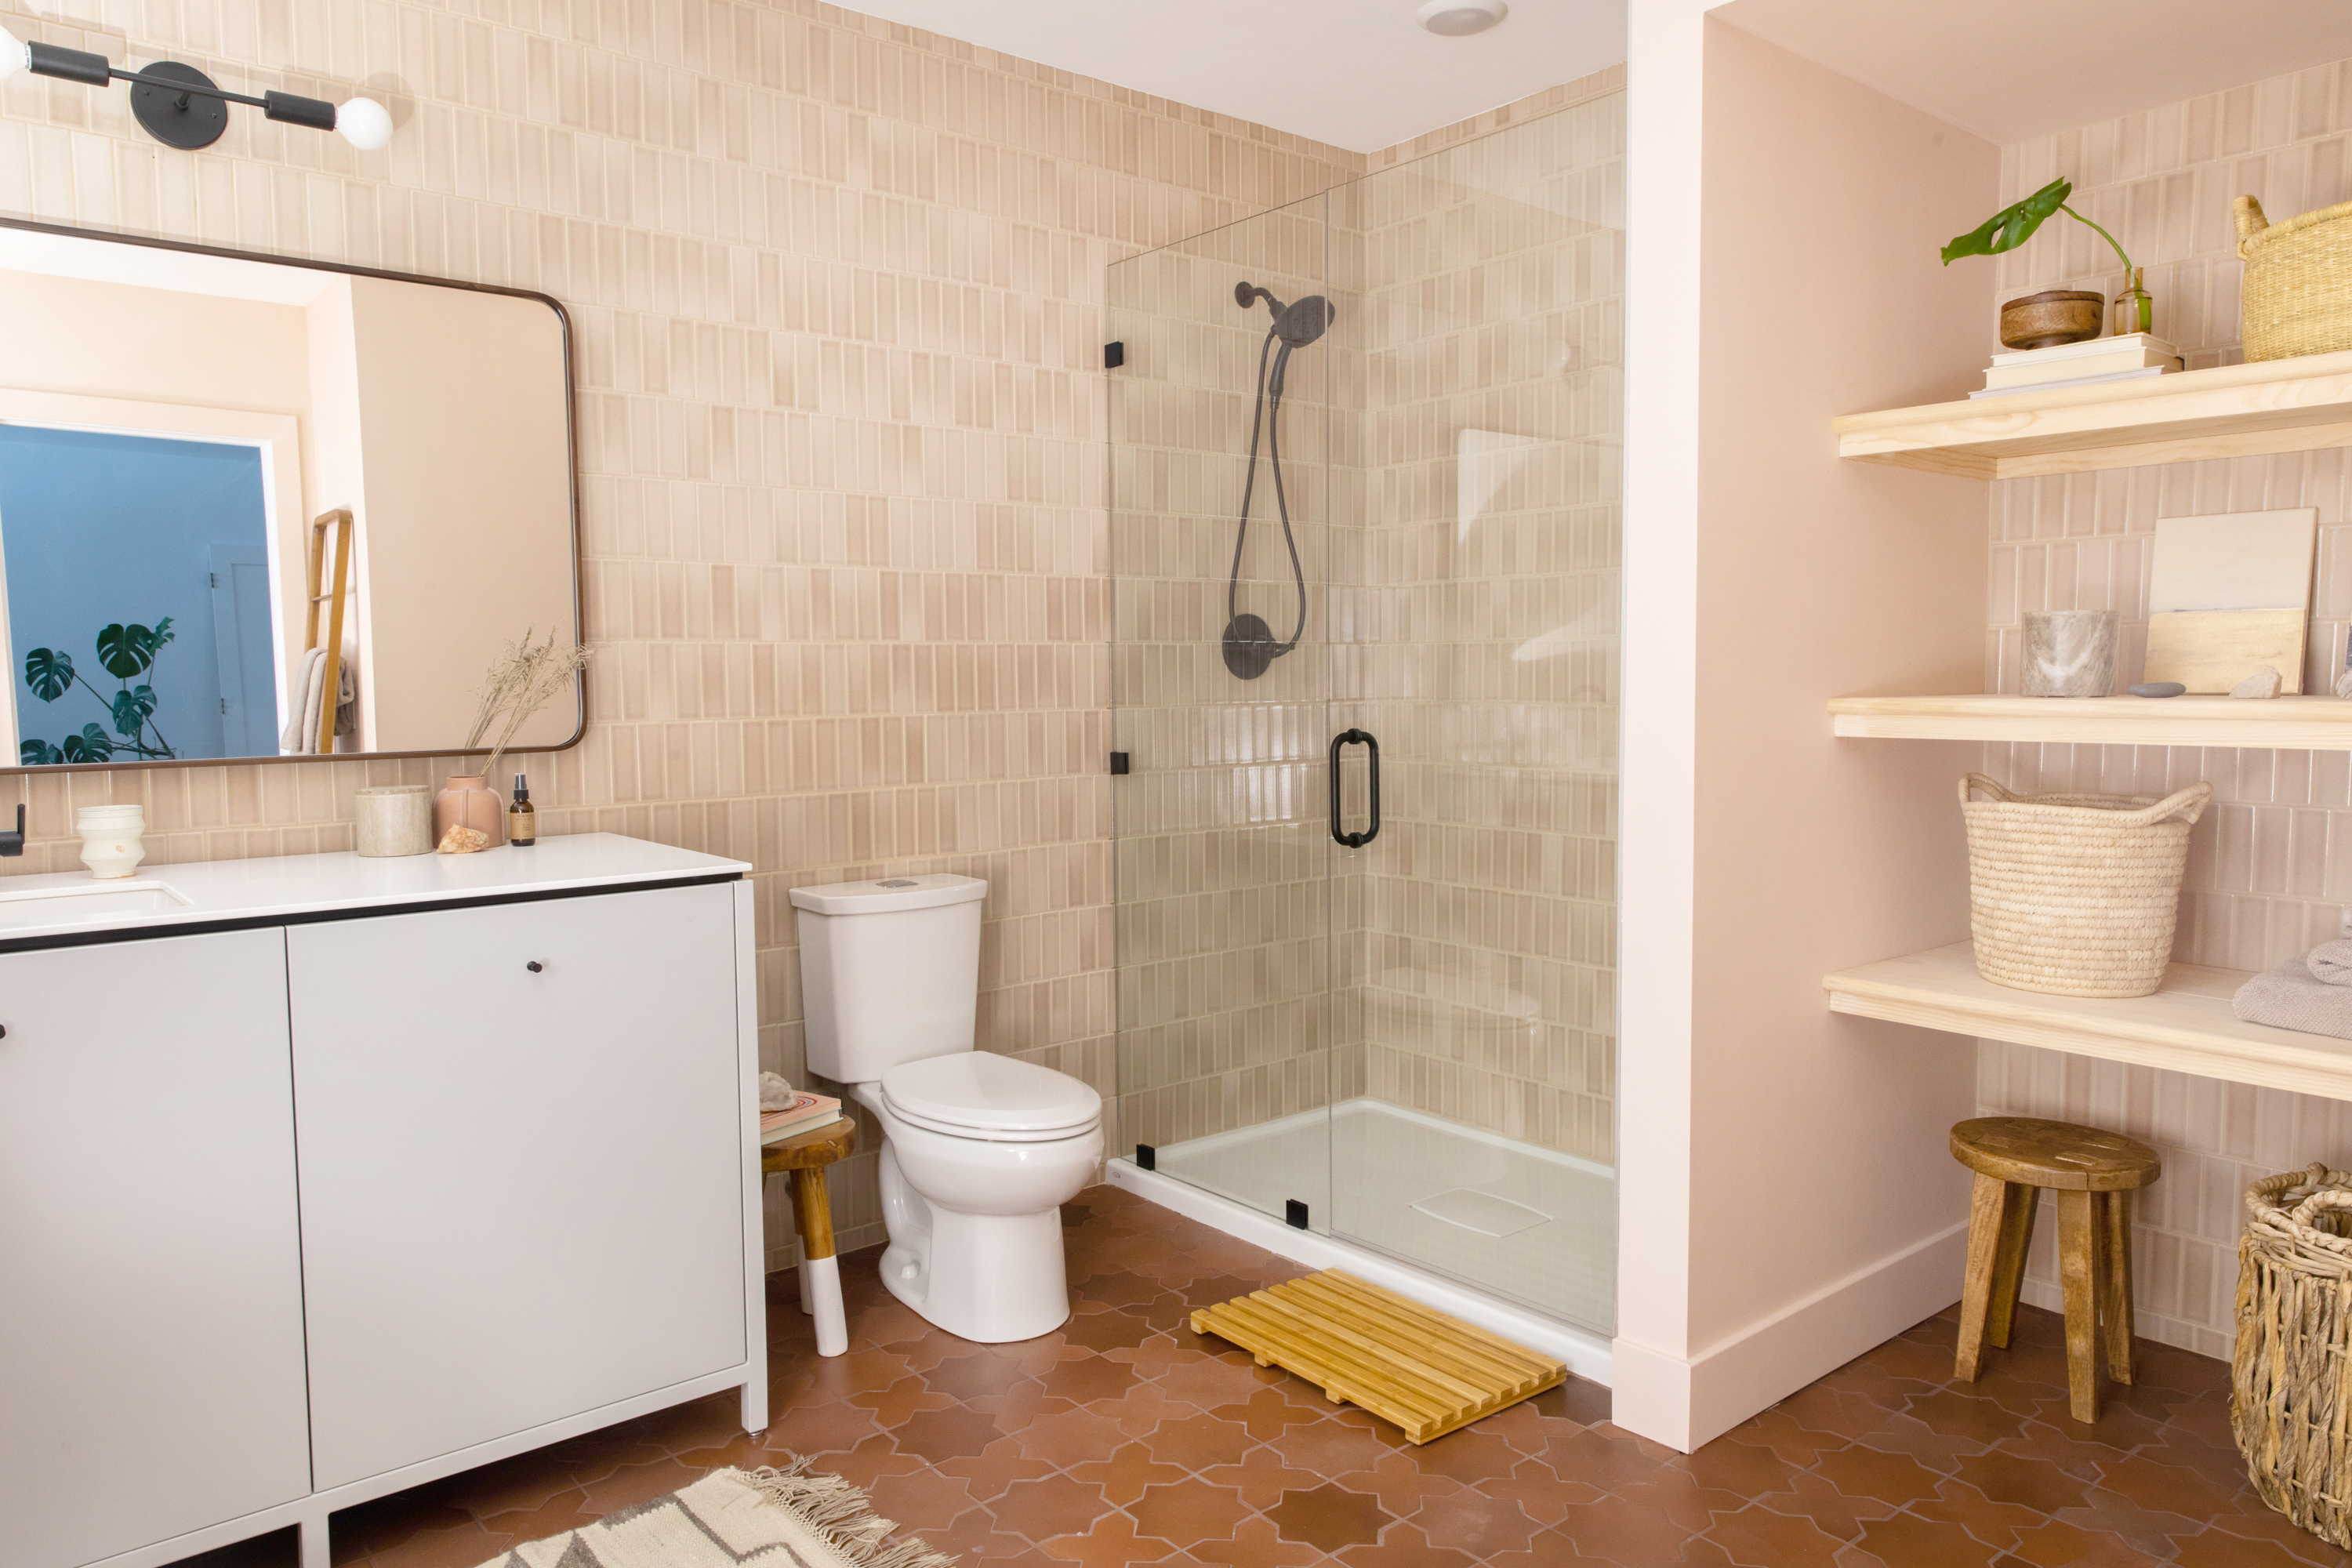 2x6 tiles in Sand Dune + Large Star and Cross in Antique. See the rest of this basement bathroom in our gallery.